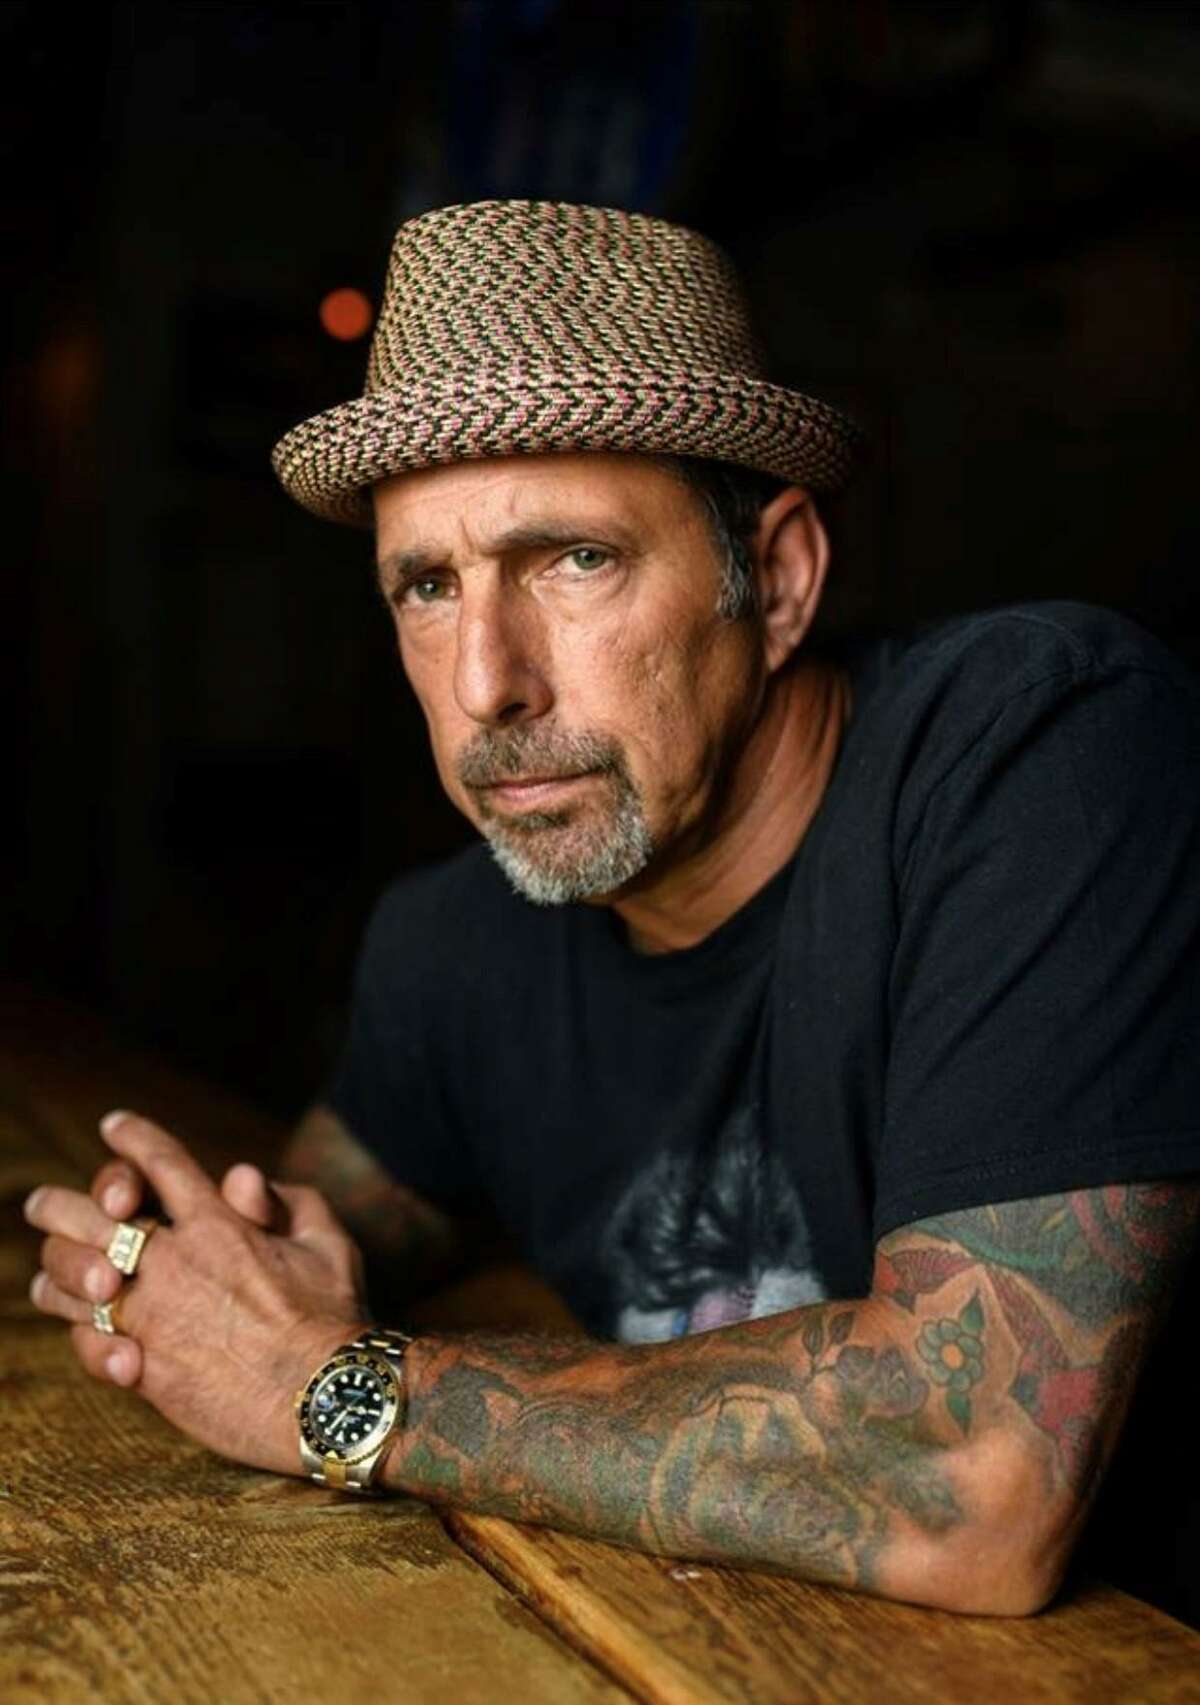 Rich Vos will perform at the Ridgefield Playhouse on July 11.